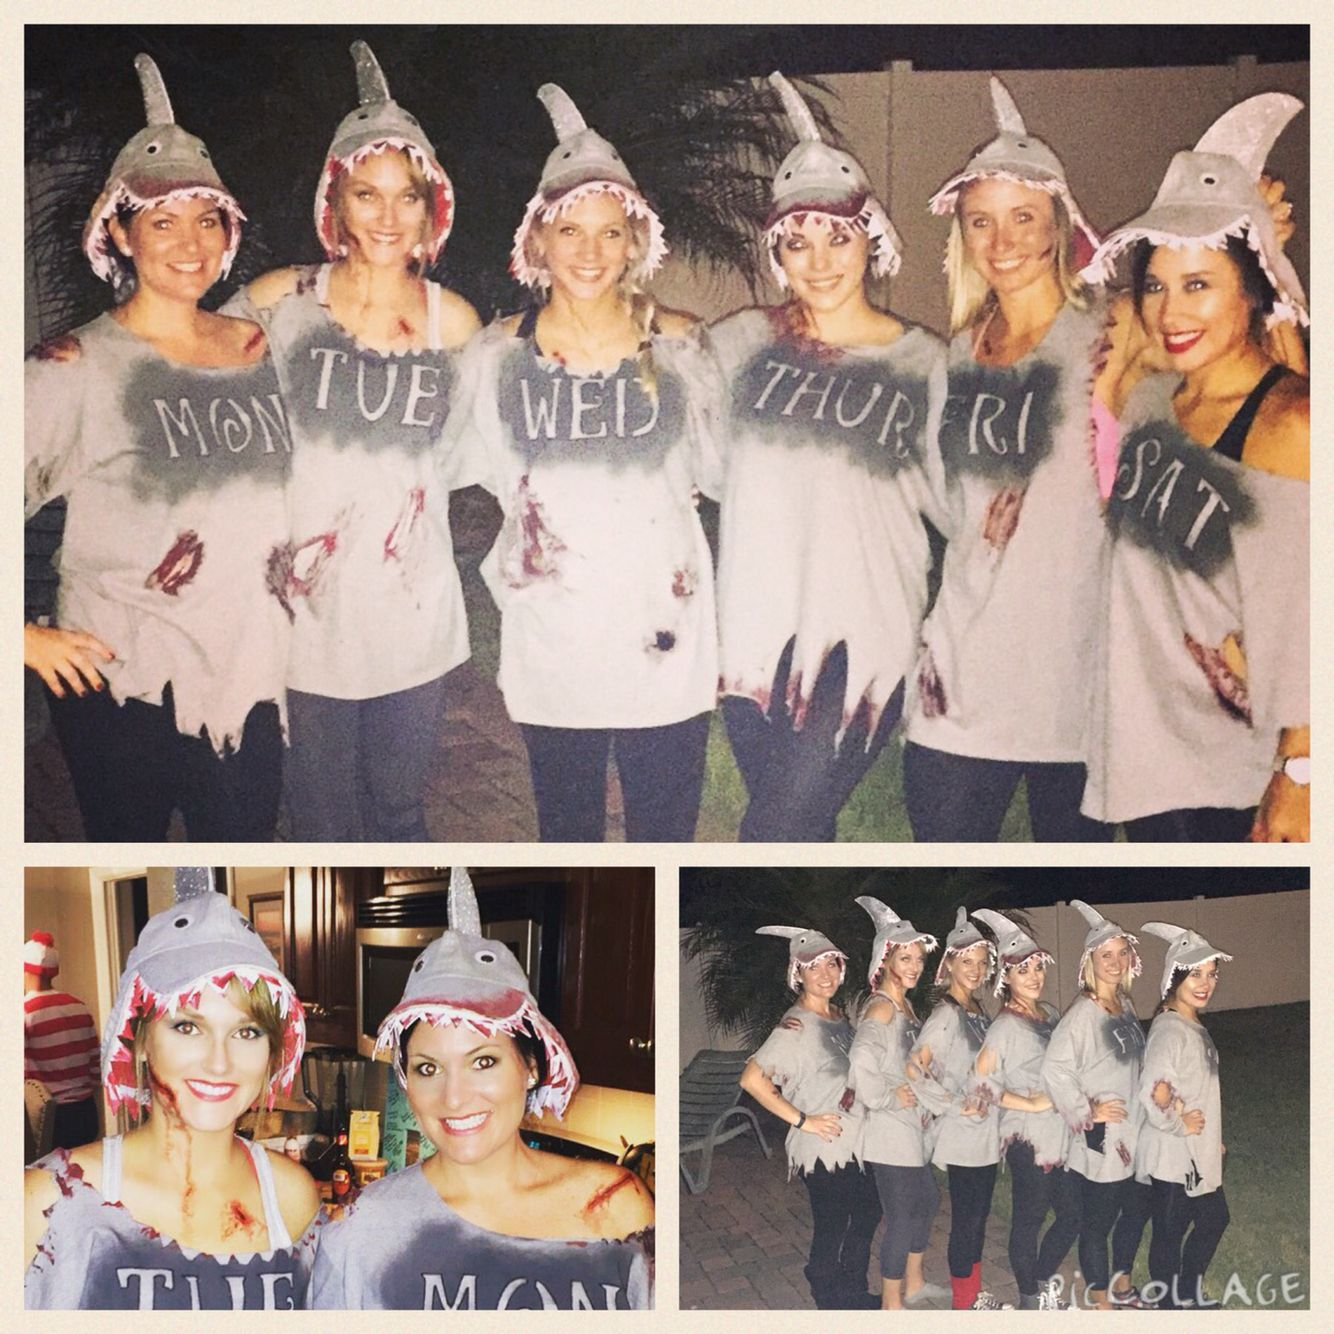 Shark week group costume homemade costume  sc 1 st  Pinterest & Shark week group costume homemade costume | Halloween | Pinterest ...